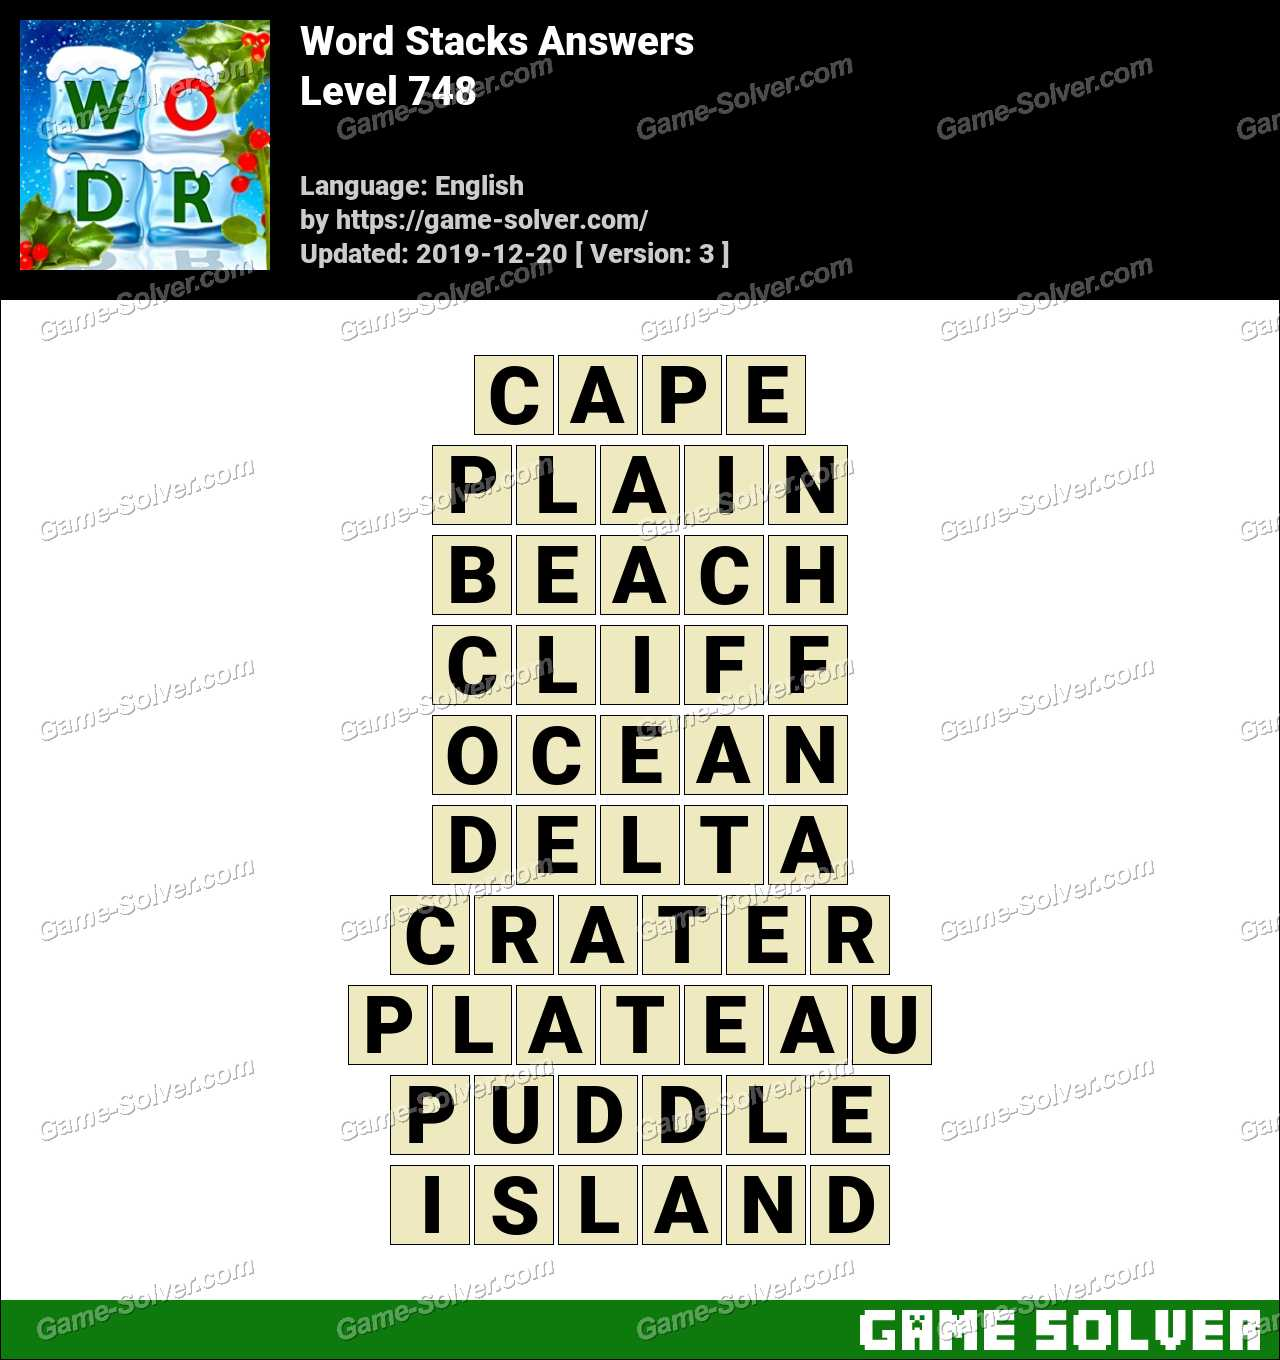 Word Stacks Level 748 Answers